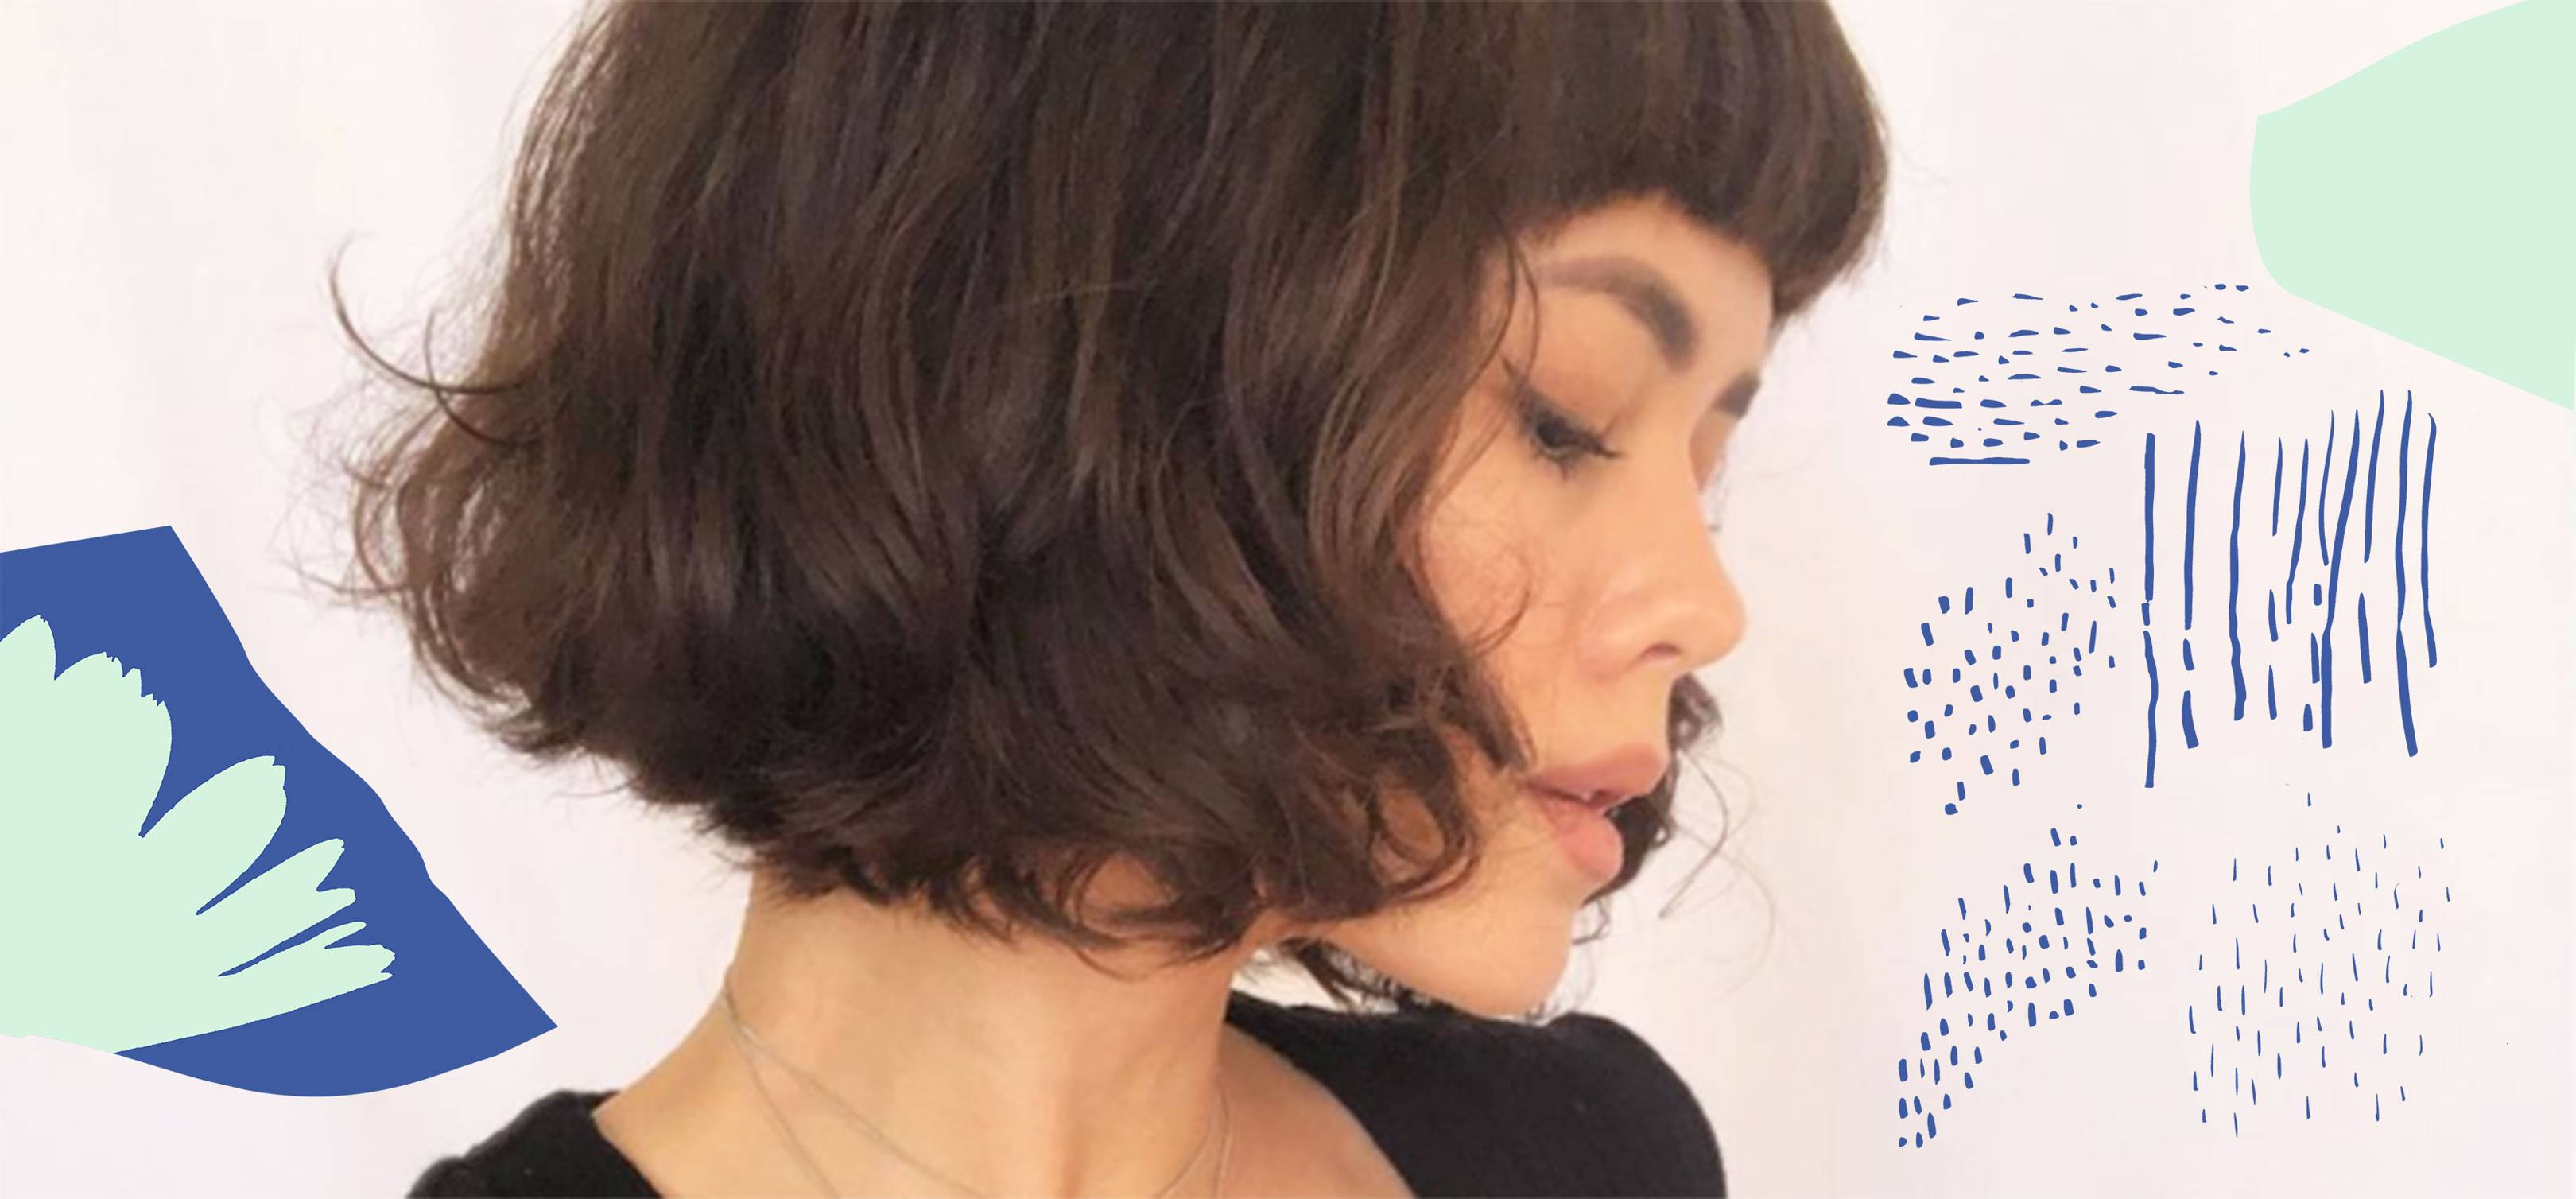 Fringed Bobs Combine Two Beautiful Cuts To Create An Iconic Style ...